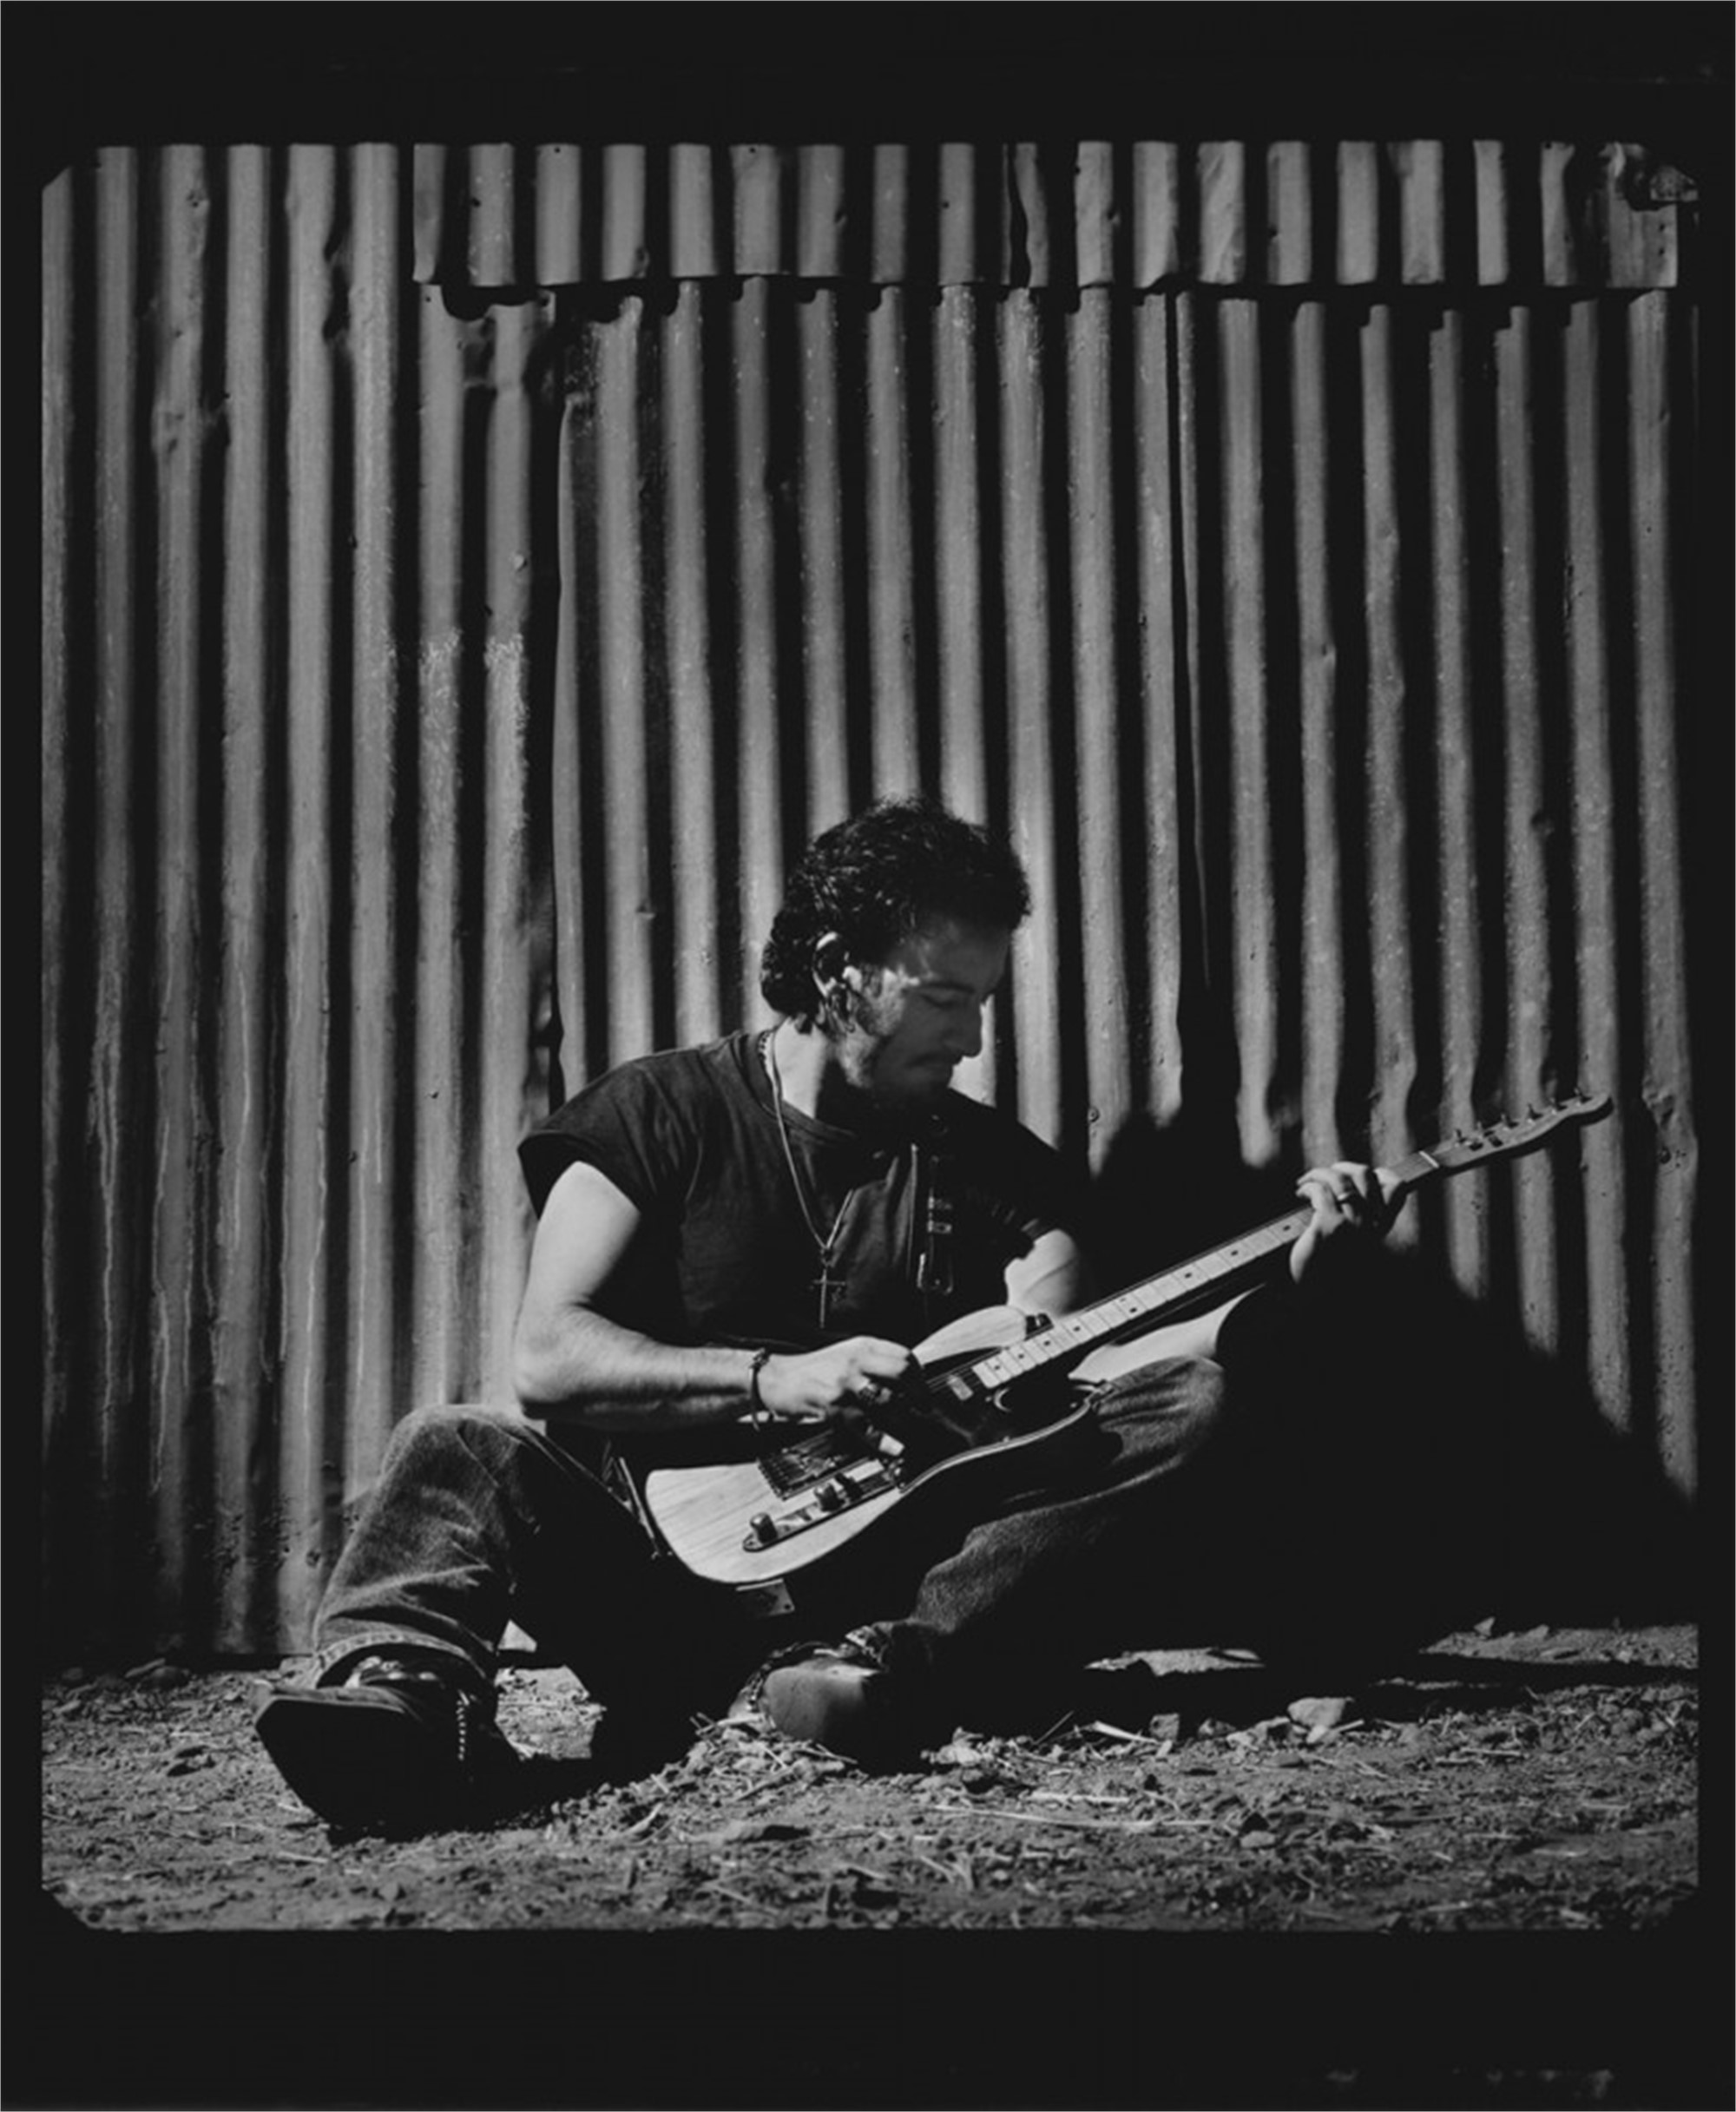 91152 Bruce Springsteen Seated on Corrugated Wall BW by Timothy White